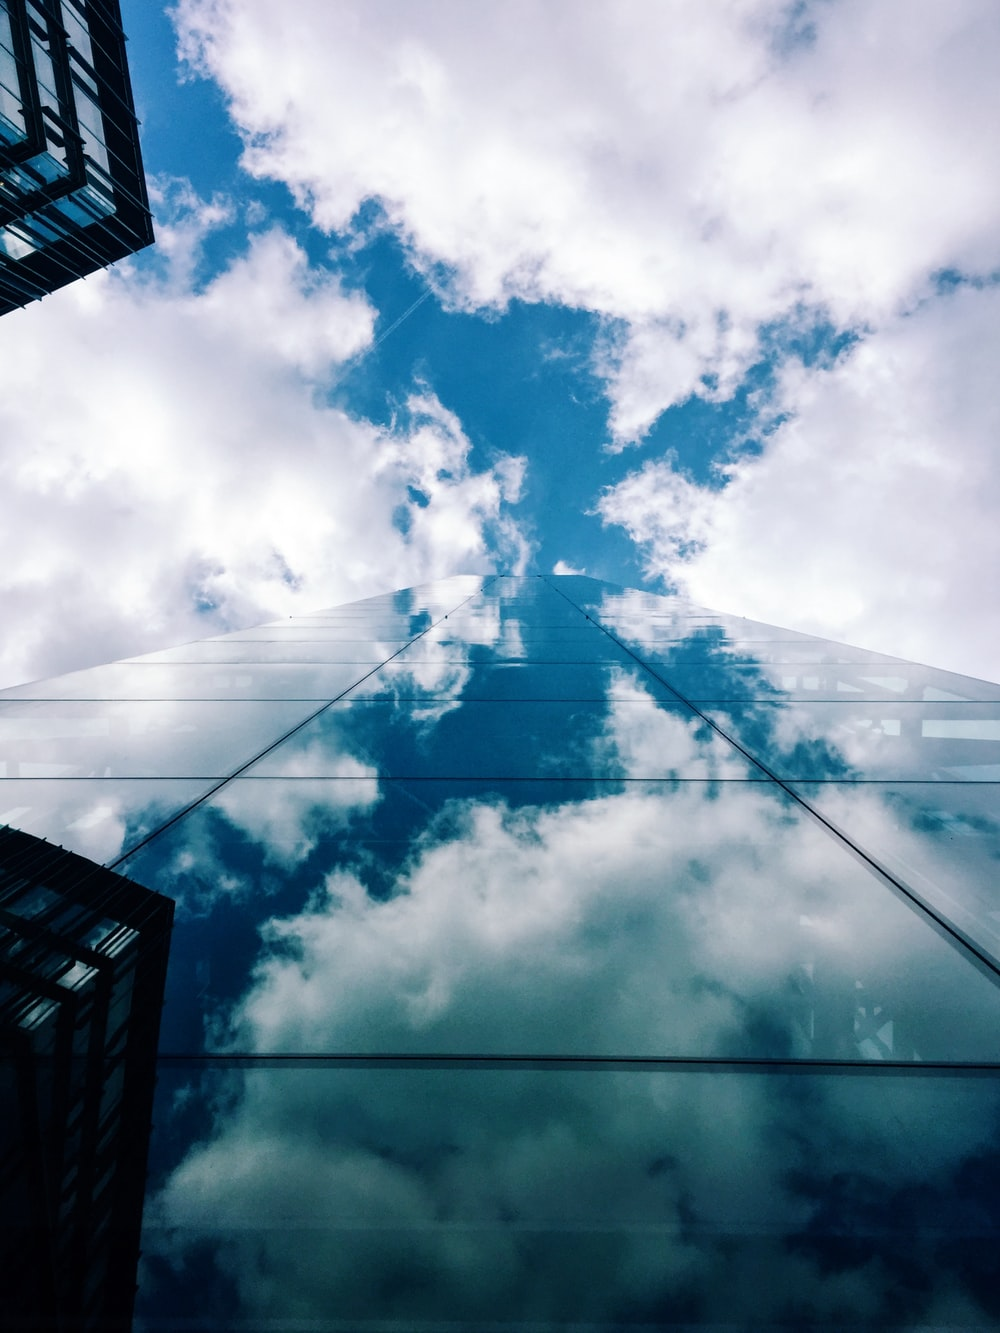 worm's-eye view of glass building across white clouds